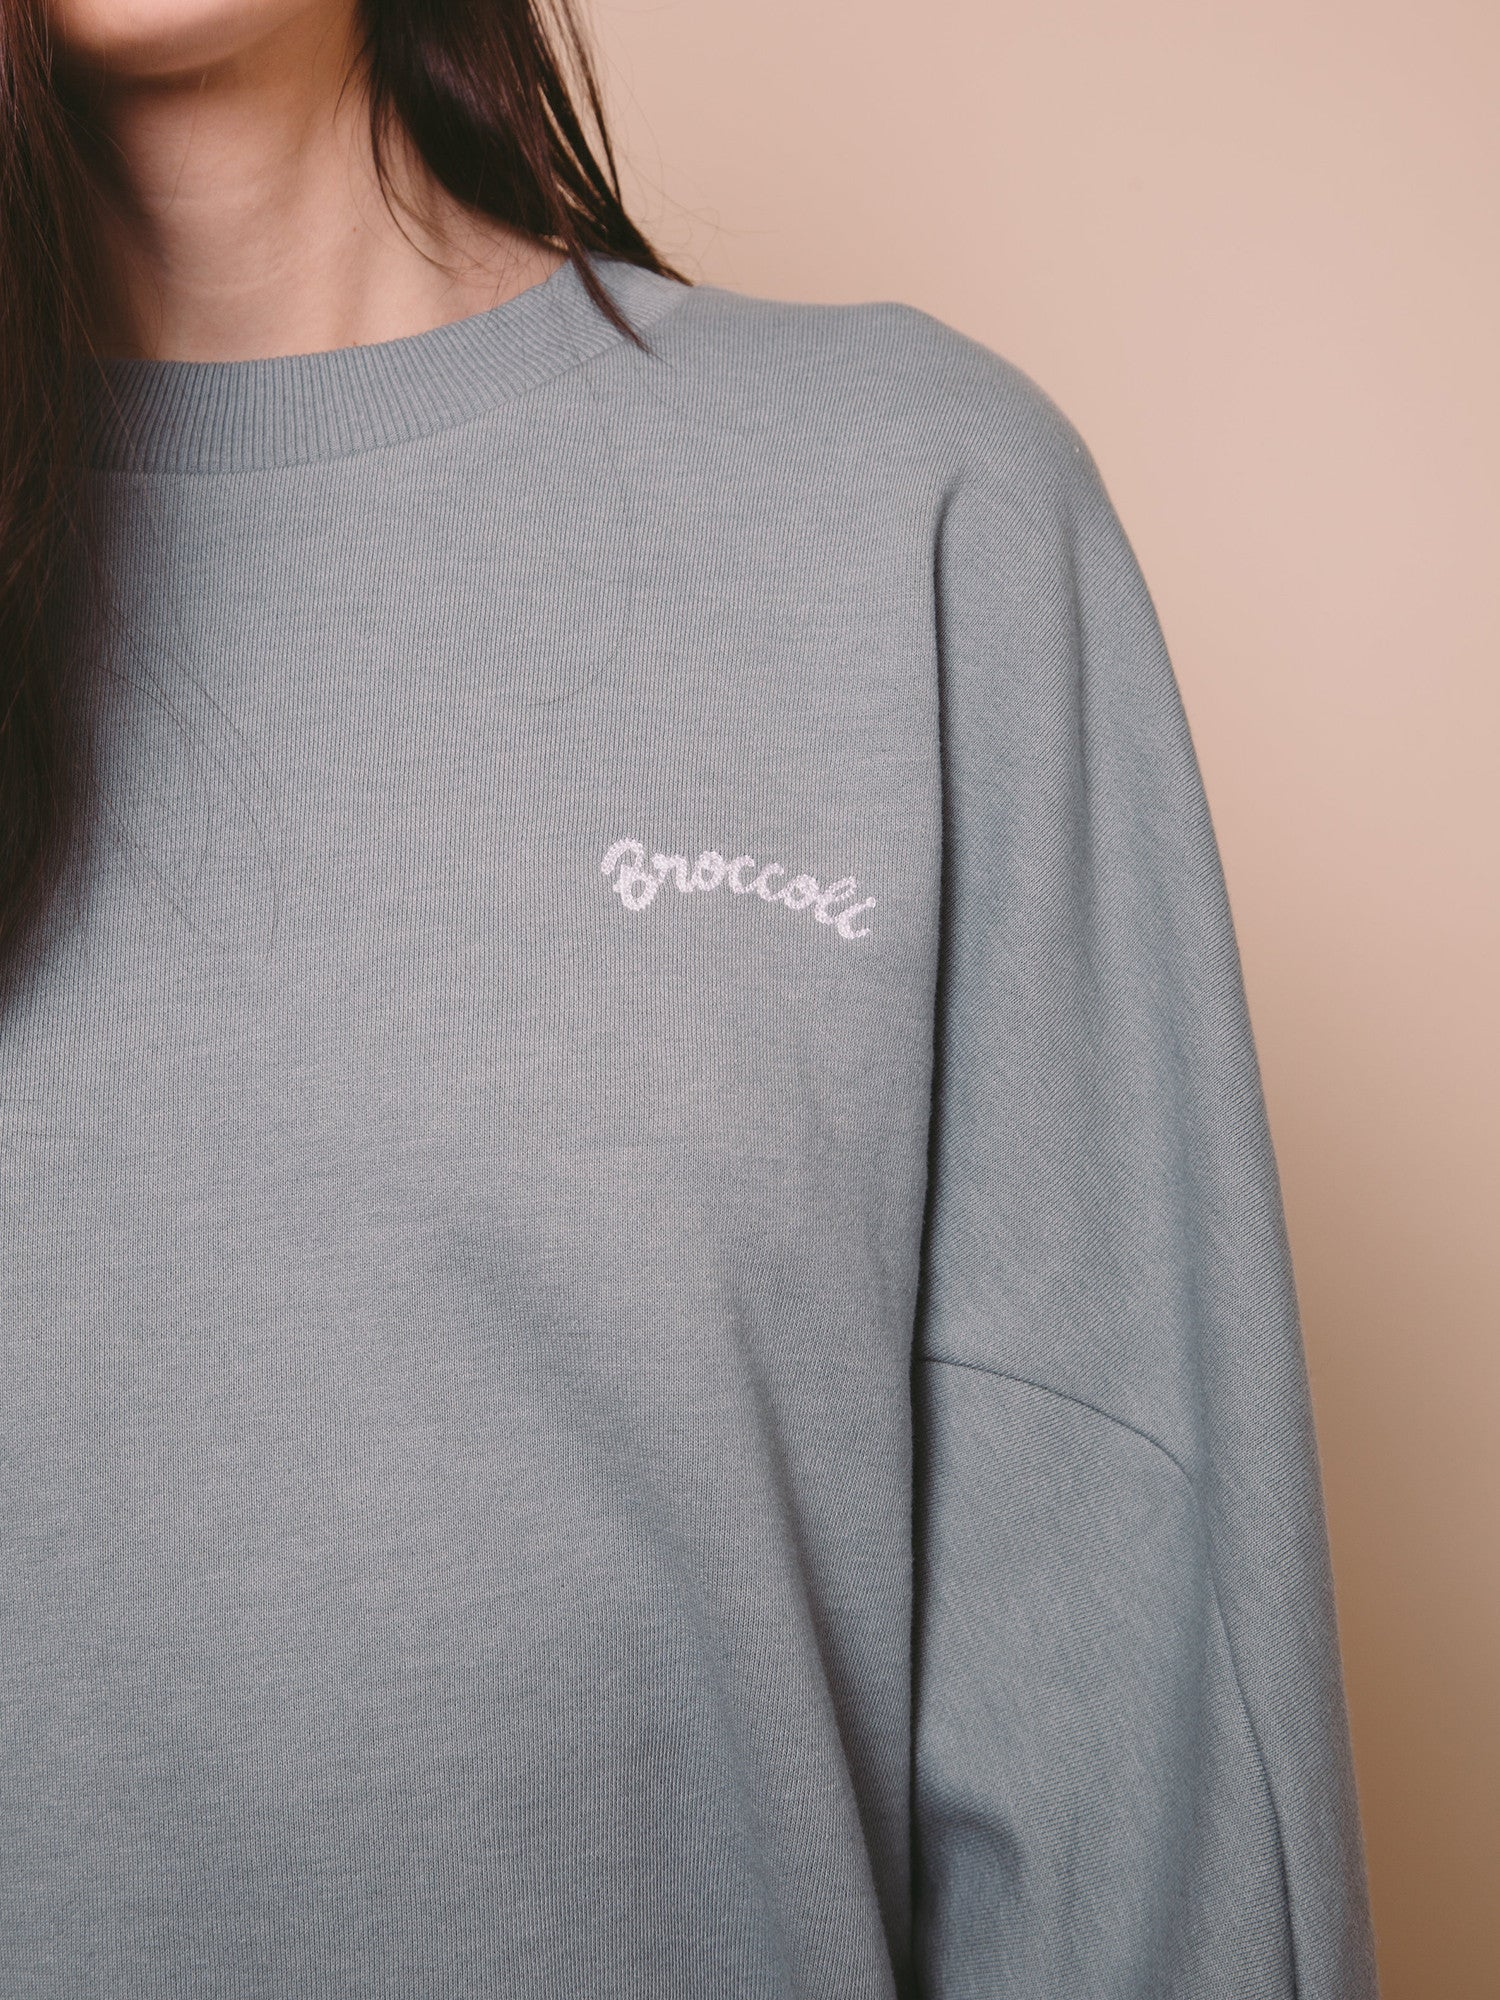 Neul-Vegetable-Sweatshirt-Detail